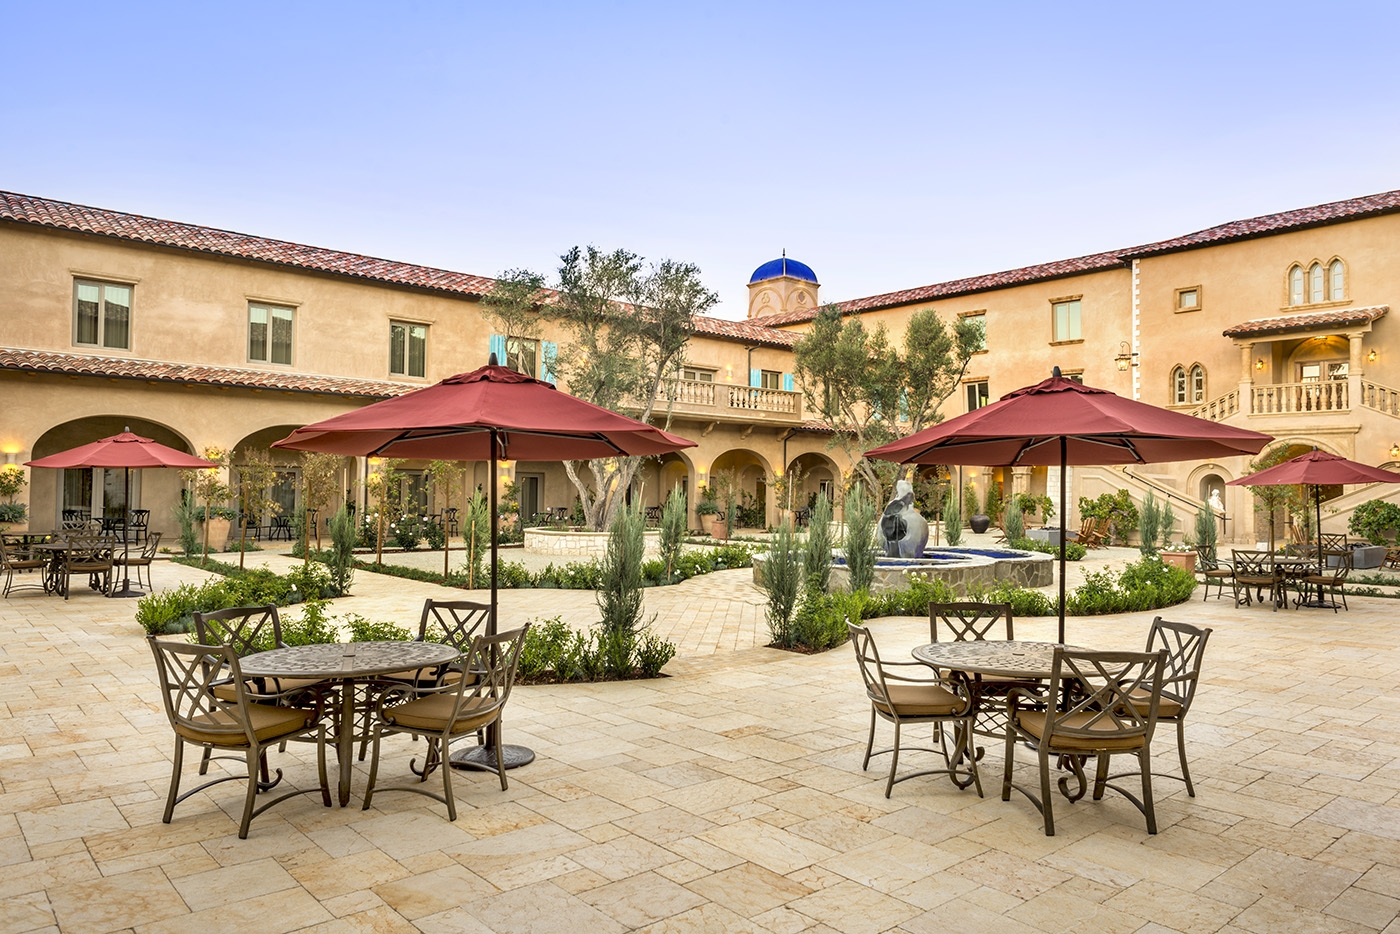 Courtyard at Allegretto Vineyard Resort with round table seating